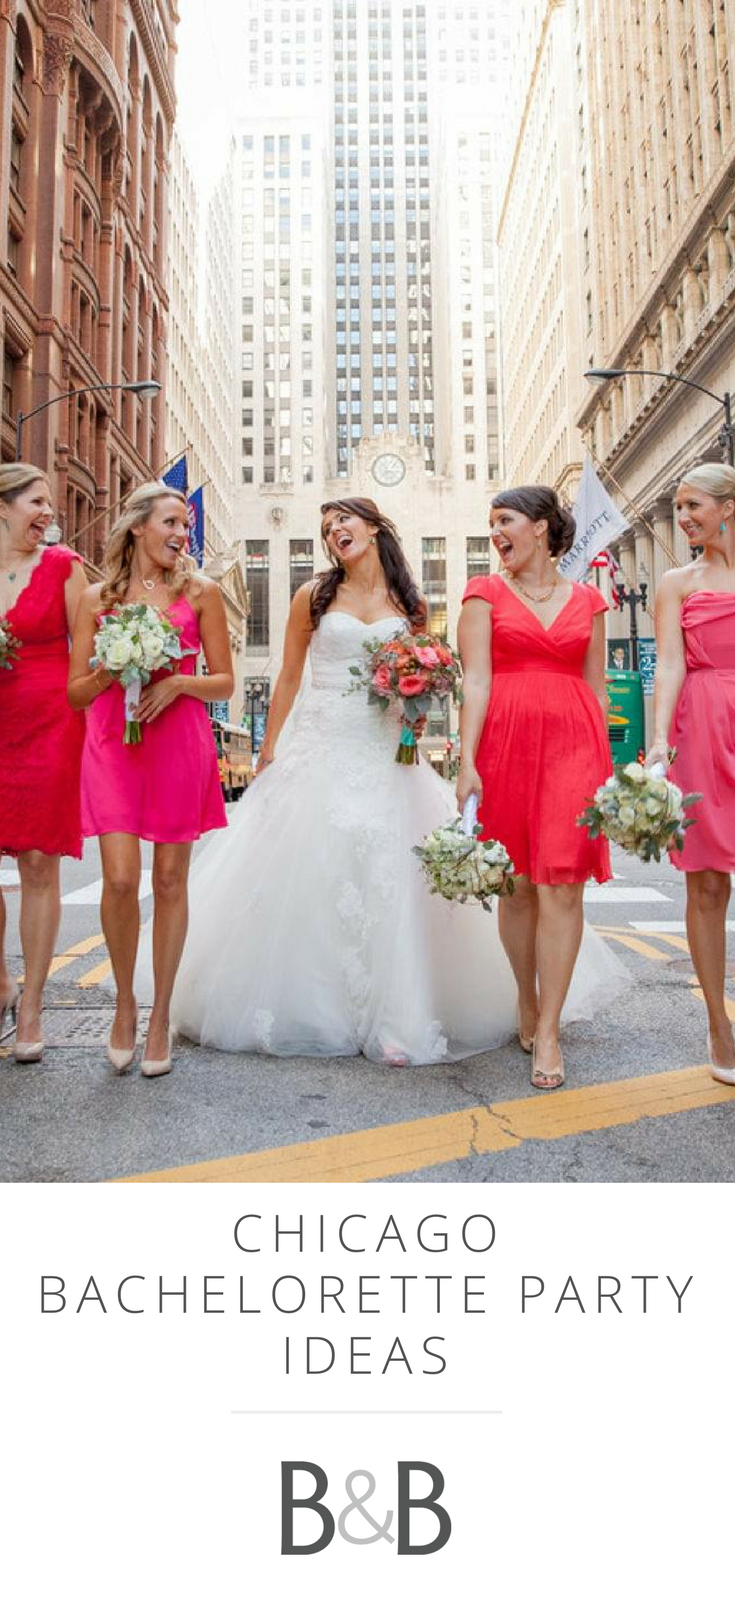 the smarter way to wed | pinterest | bachelorette parties, weddings